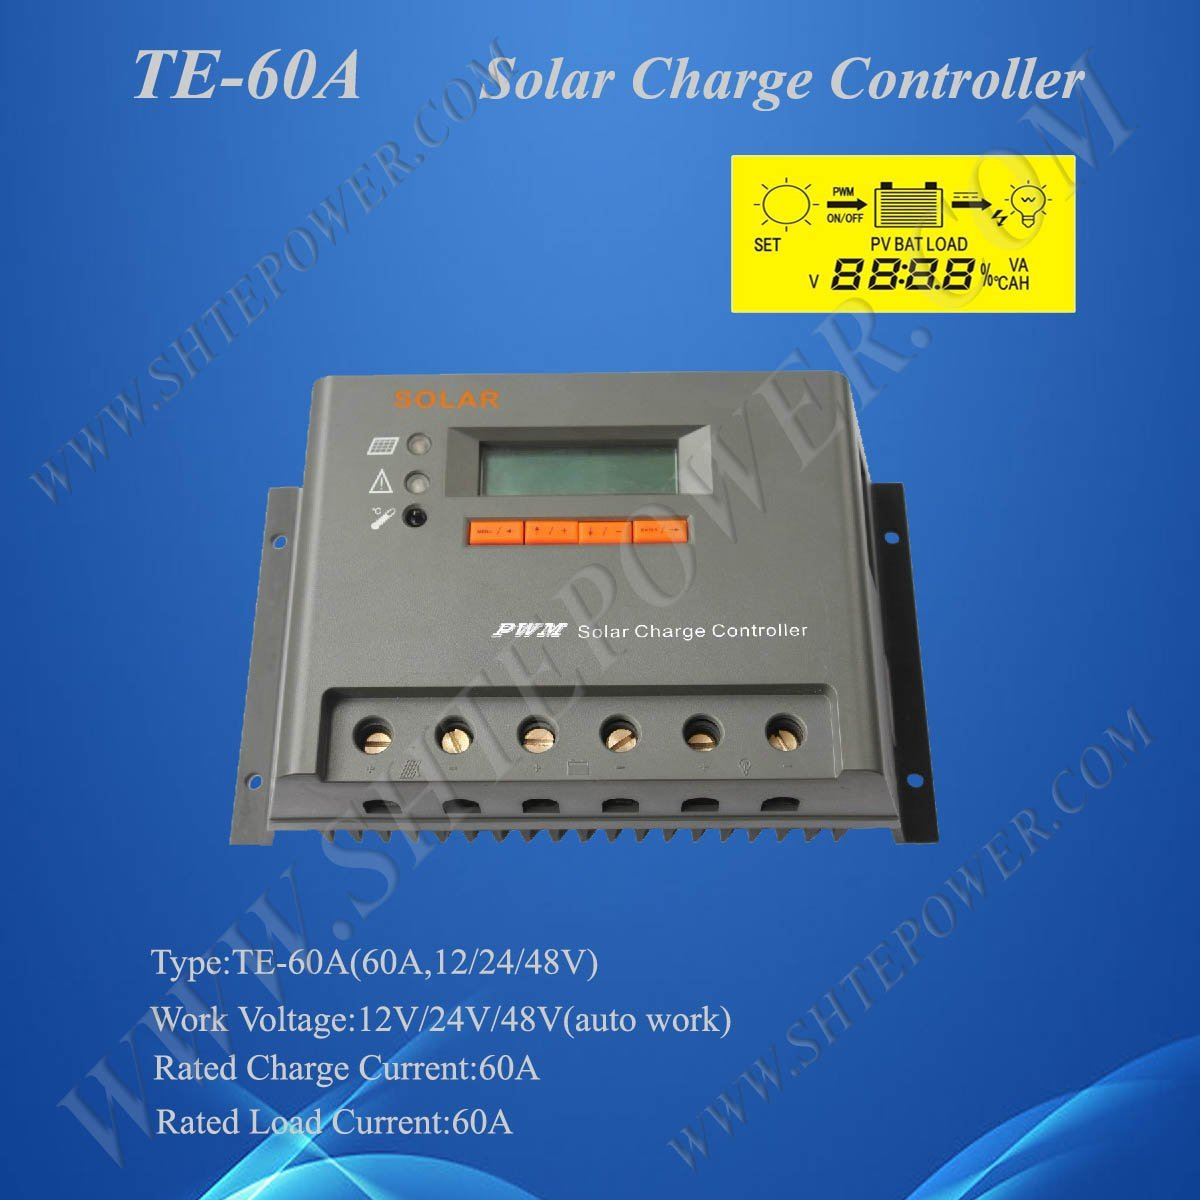 12V 24V 48V auto work Solar Panel Charge Regulator 60A, 2 Years Warranty